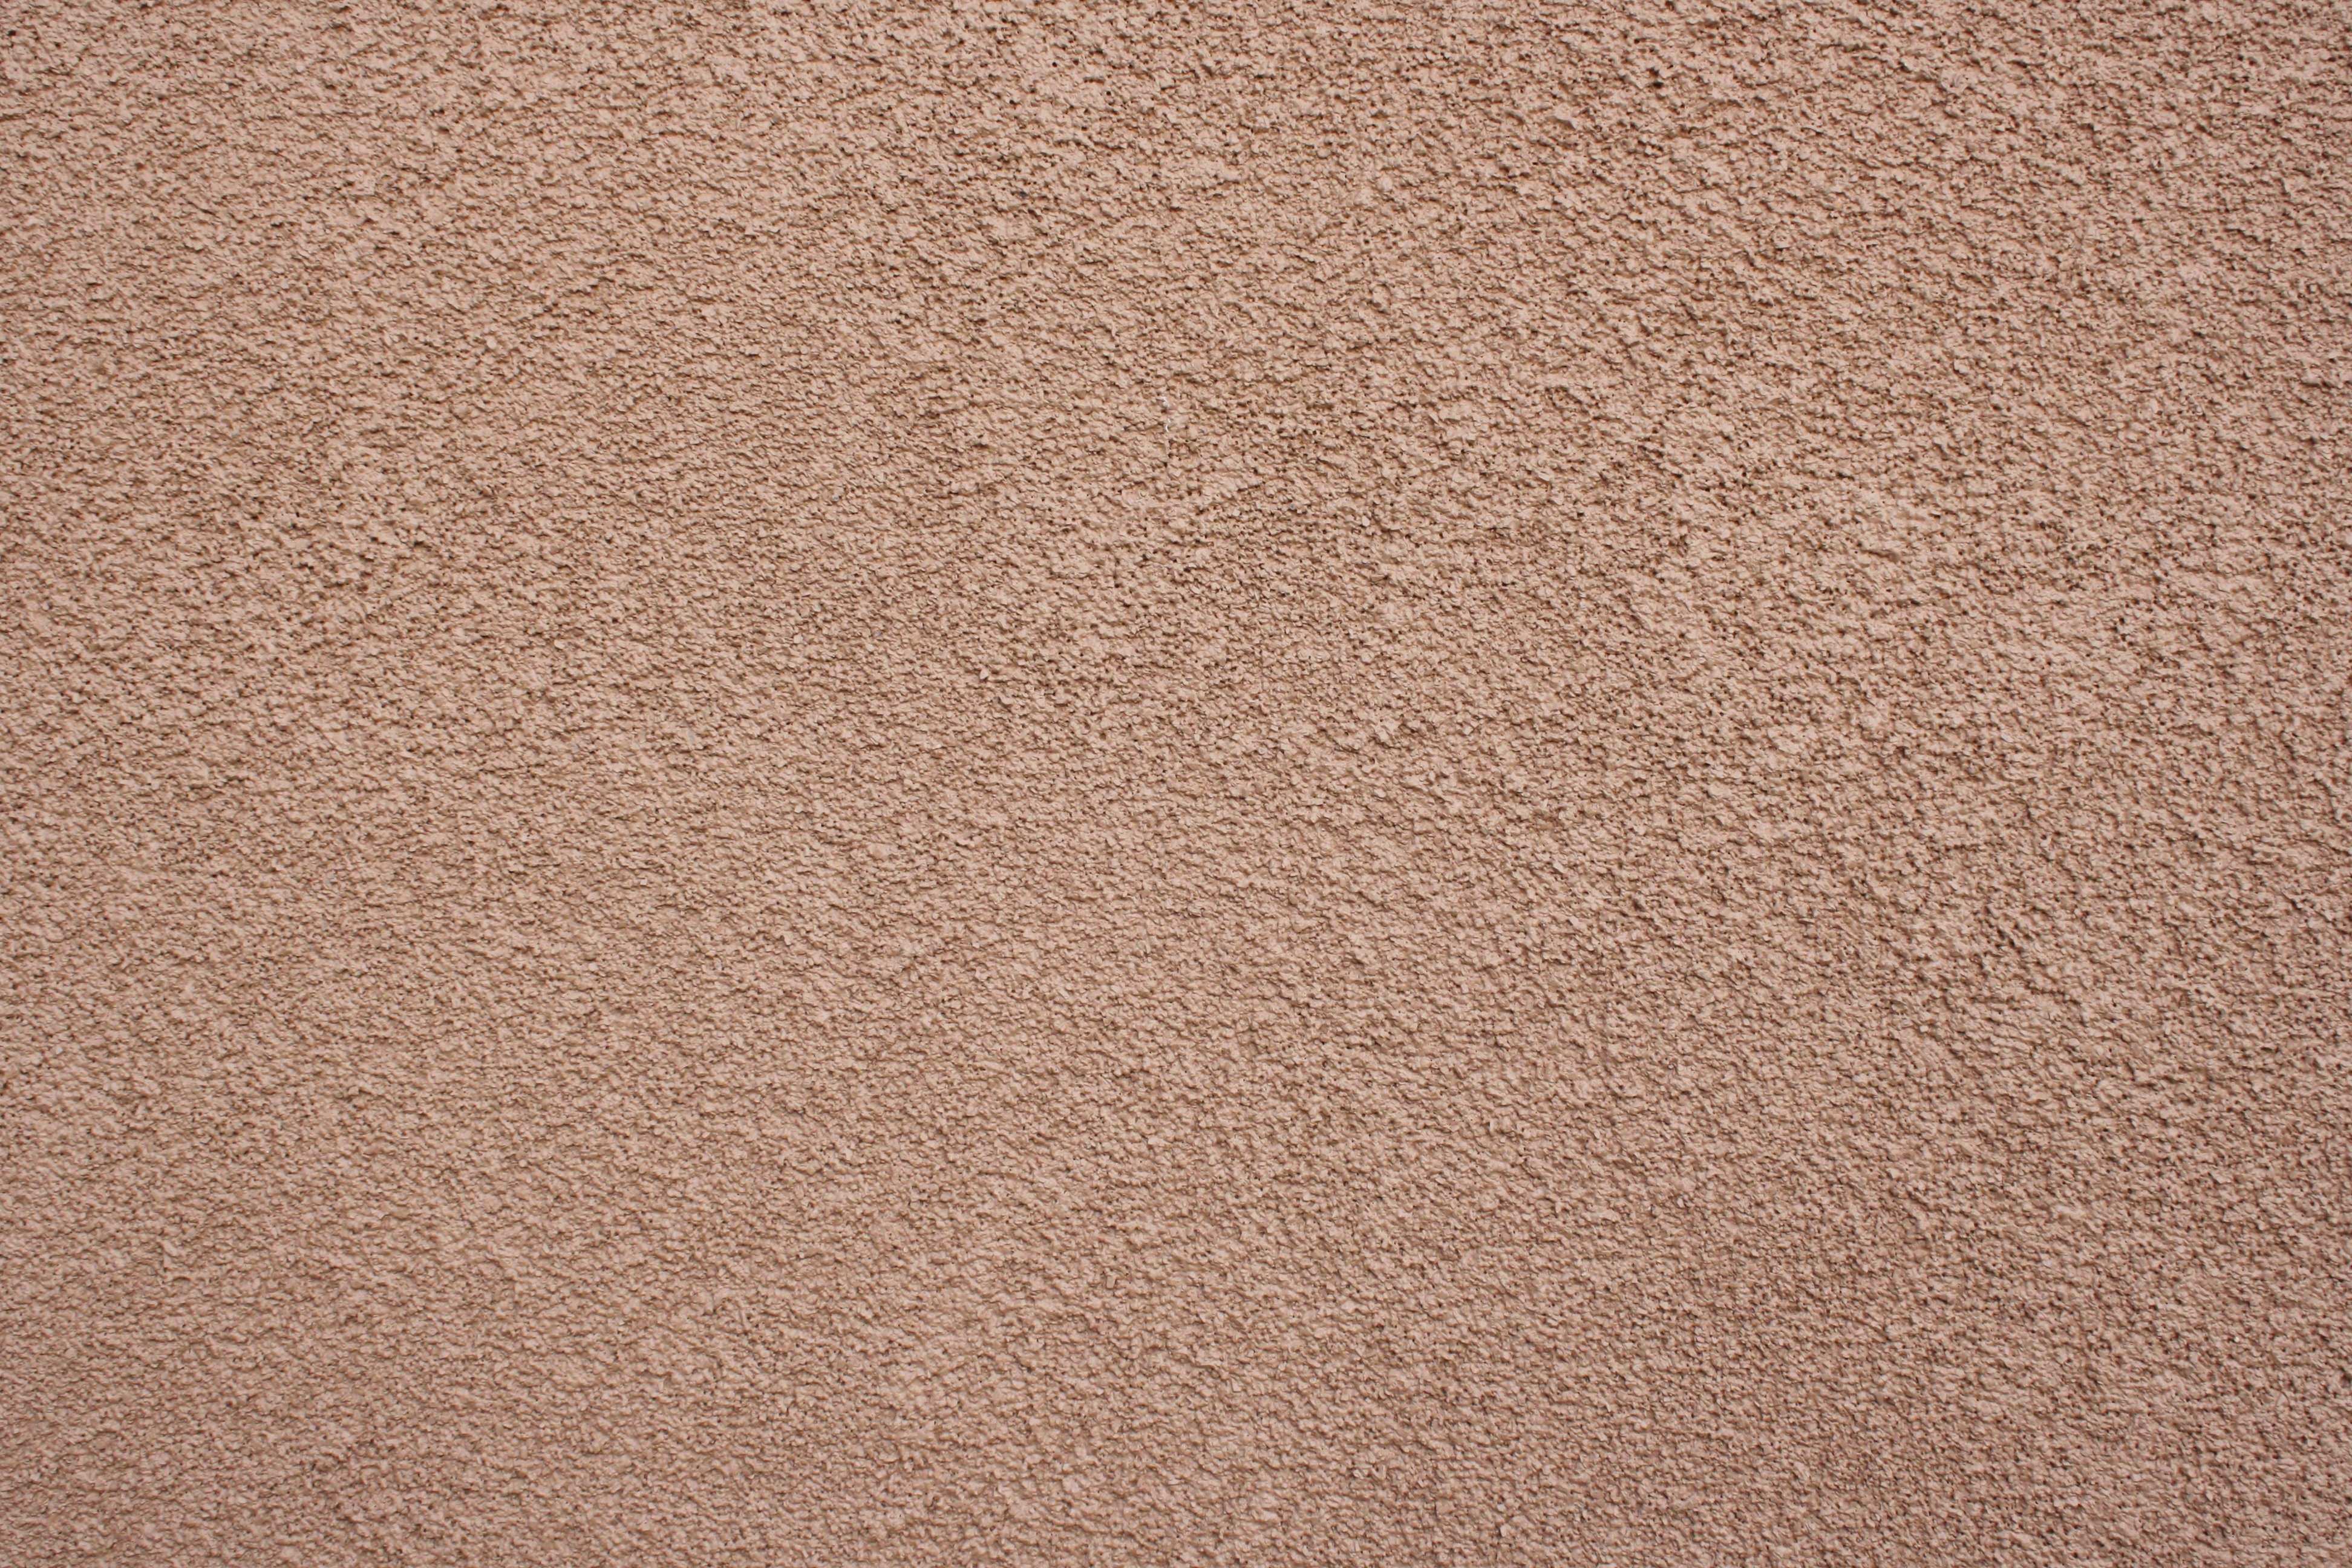 Tan Stucco Wall Texture